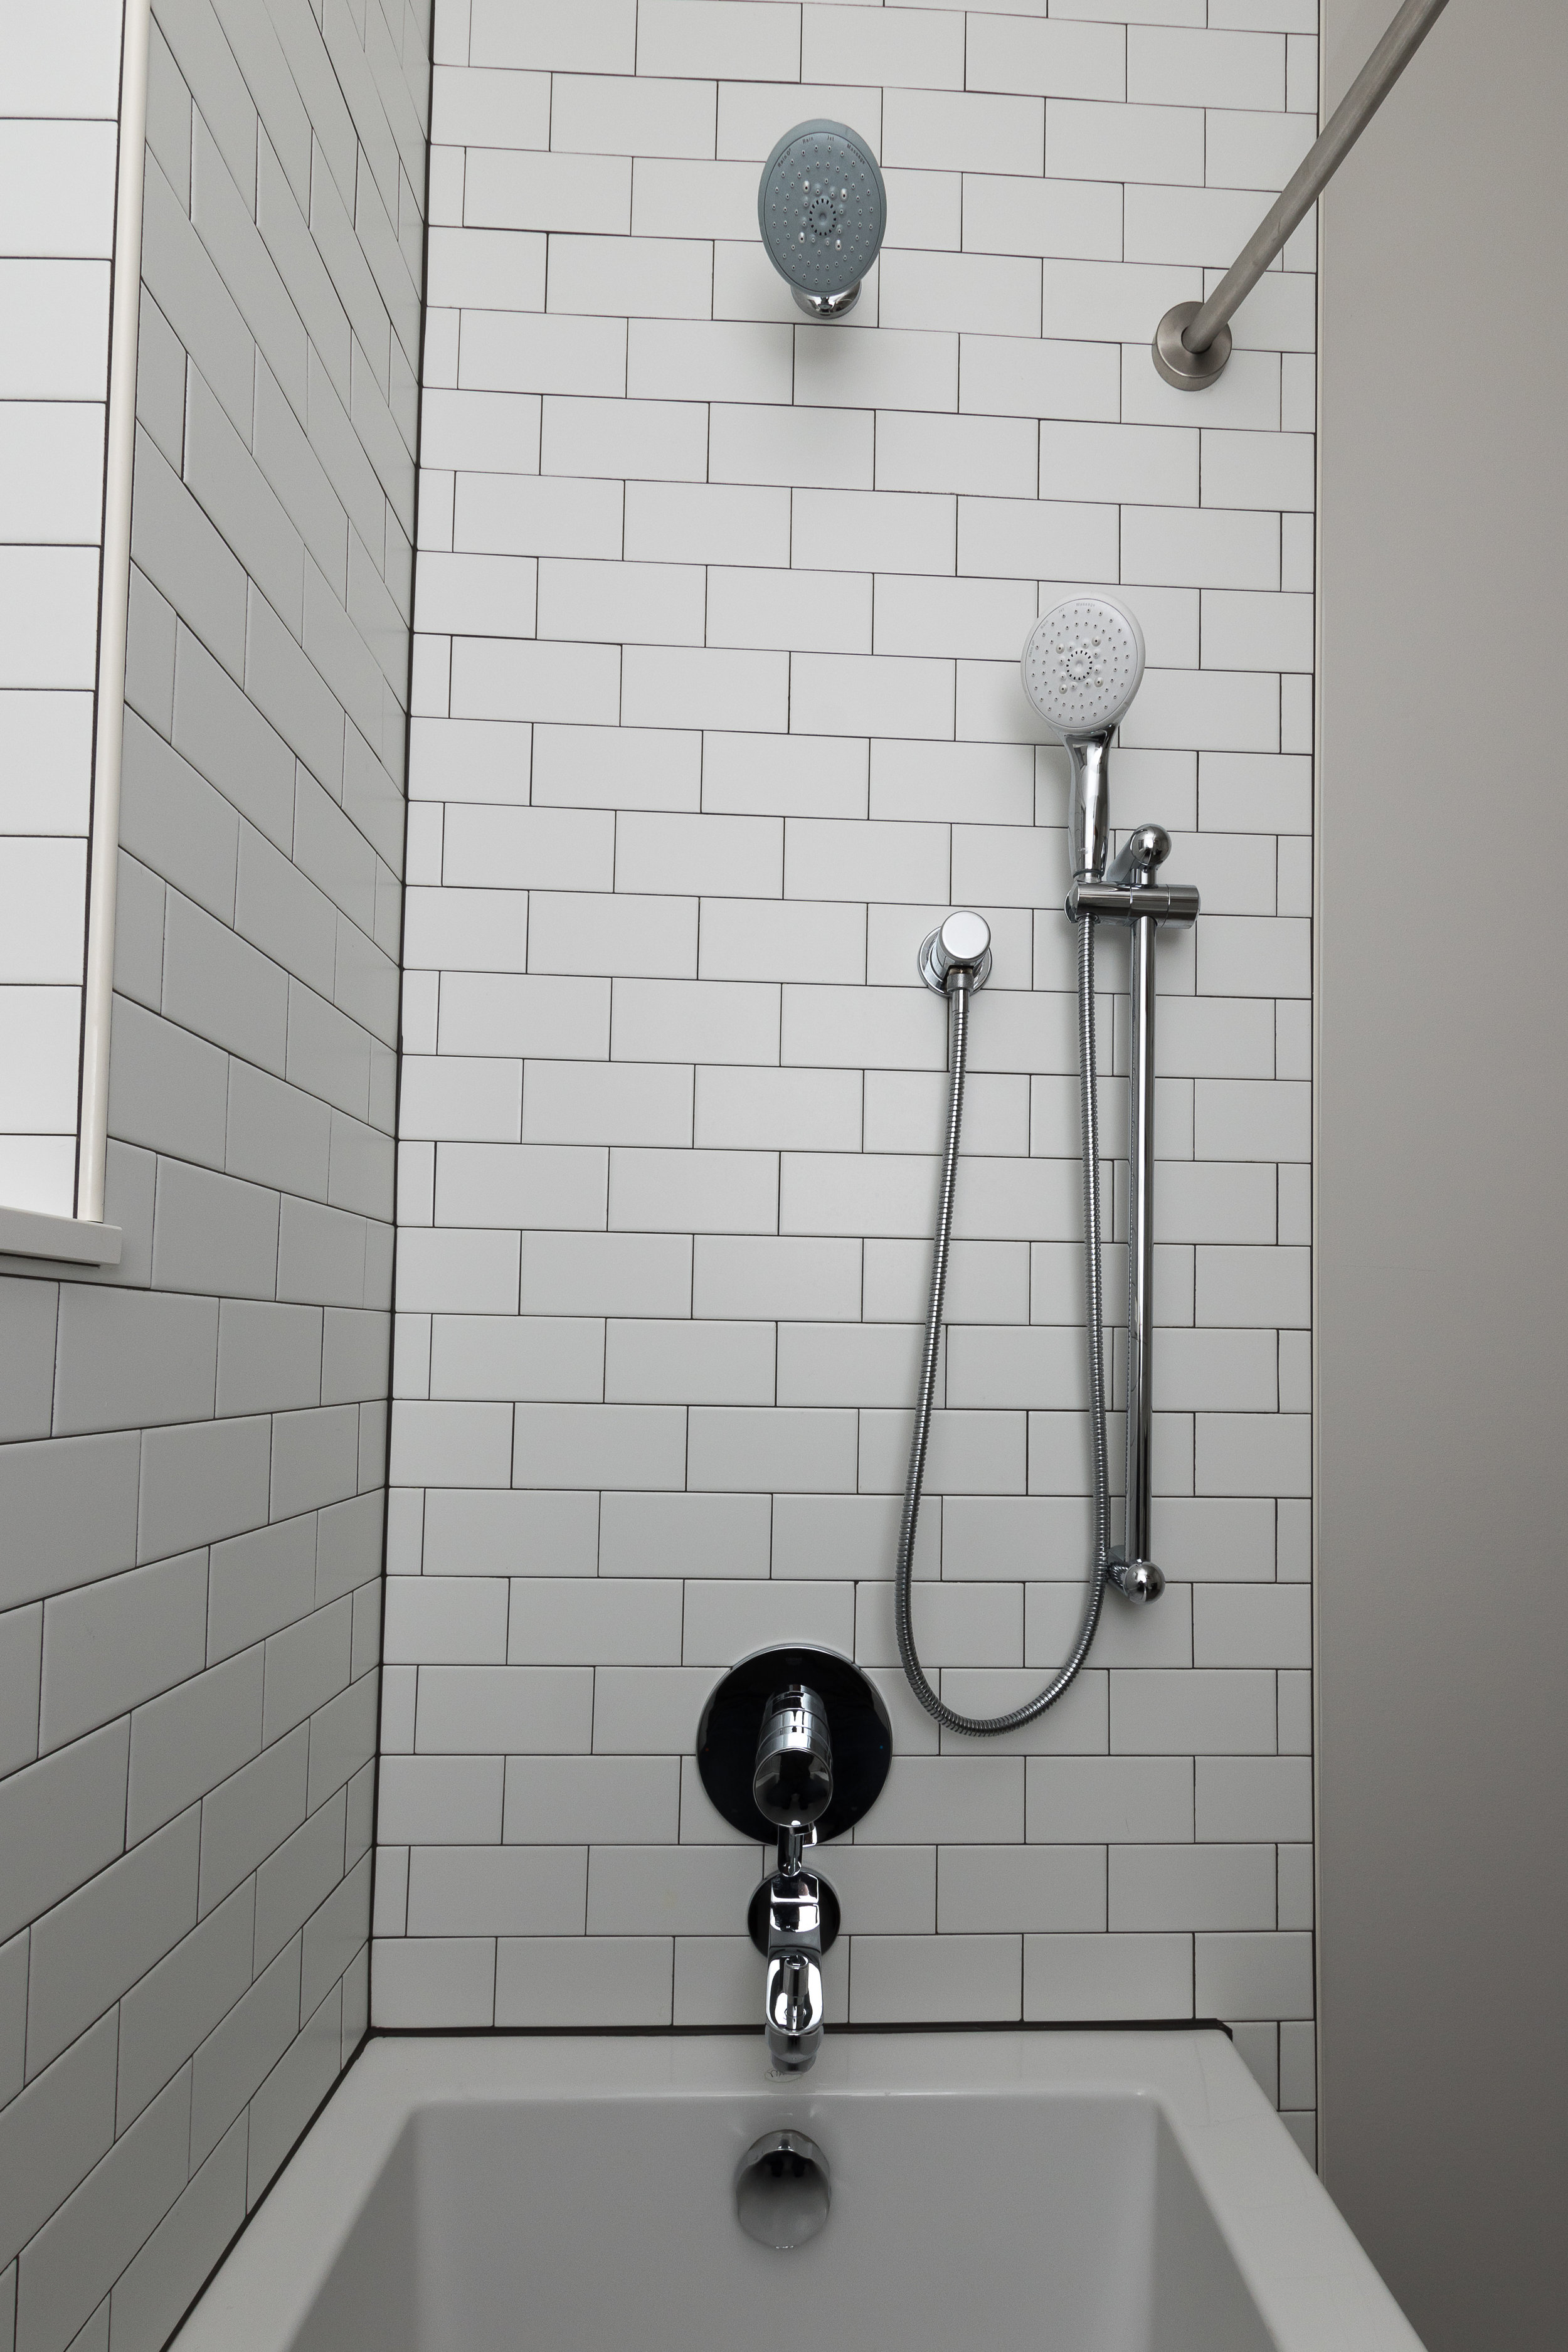 shower and tub faucet.jpg